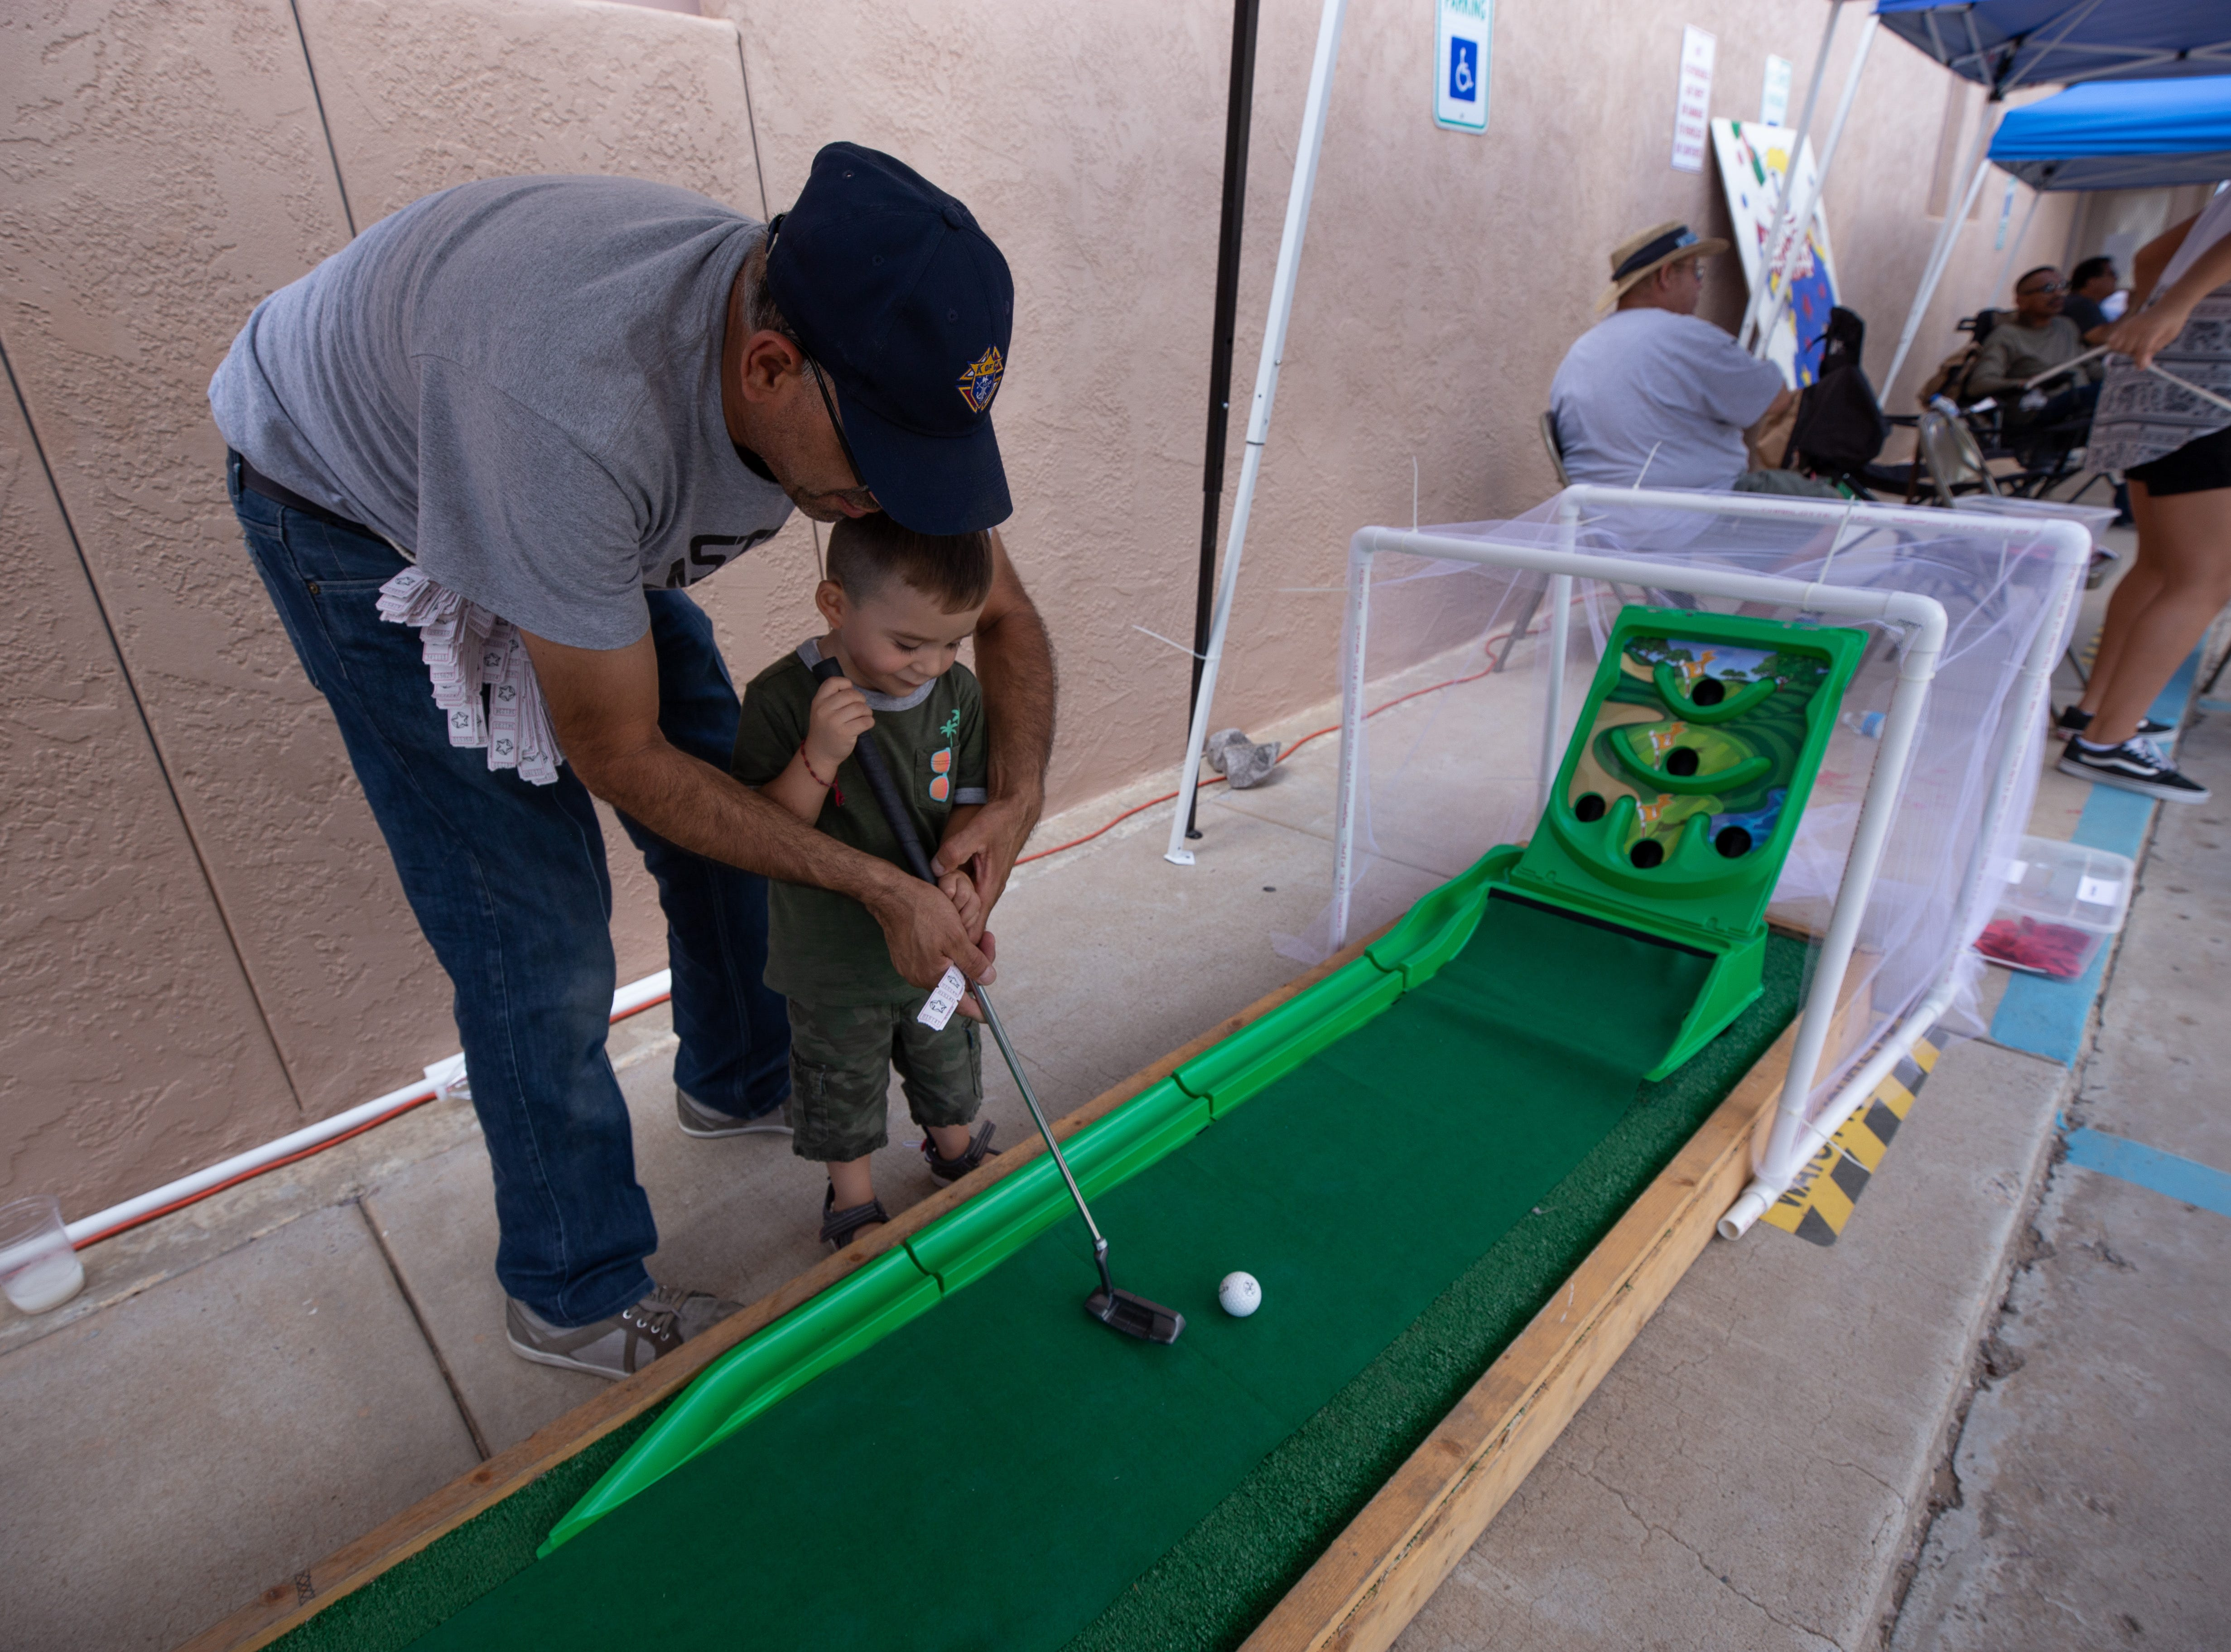 Alberto Grijalva assists Xmael Vargas, 2, with his golf swing during the St. Genevieve Fiesta on Saturday, Sept. 8, 2018.